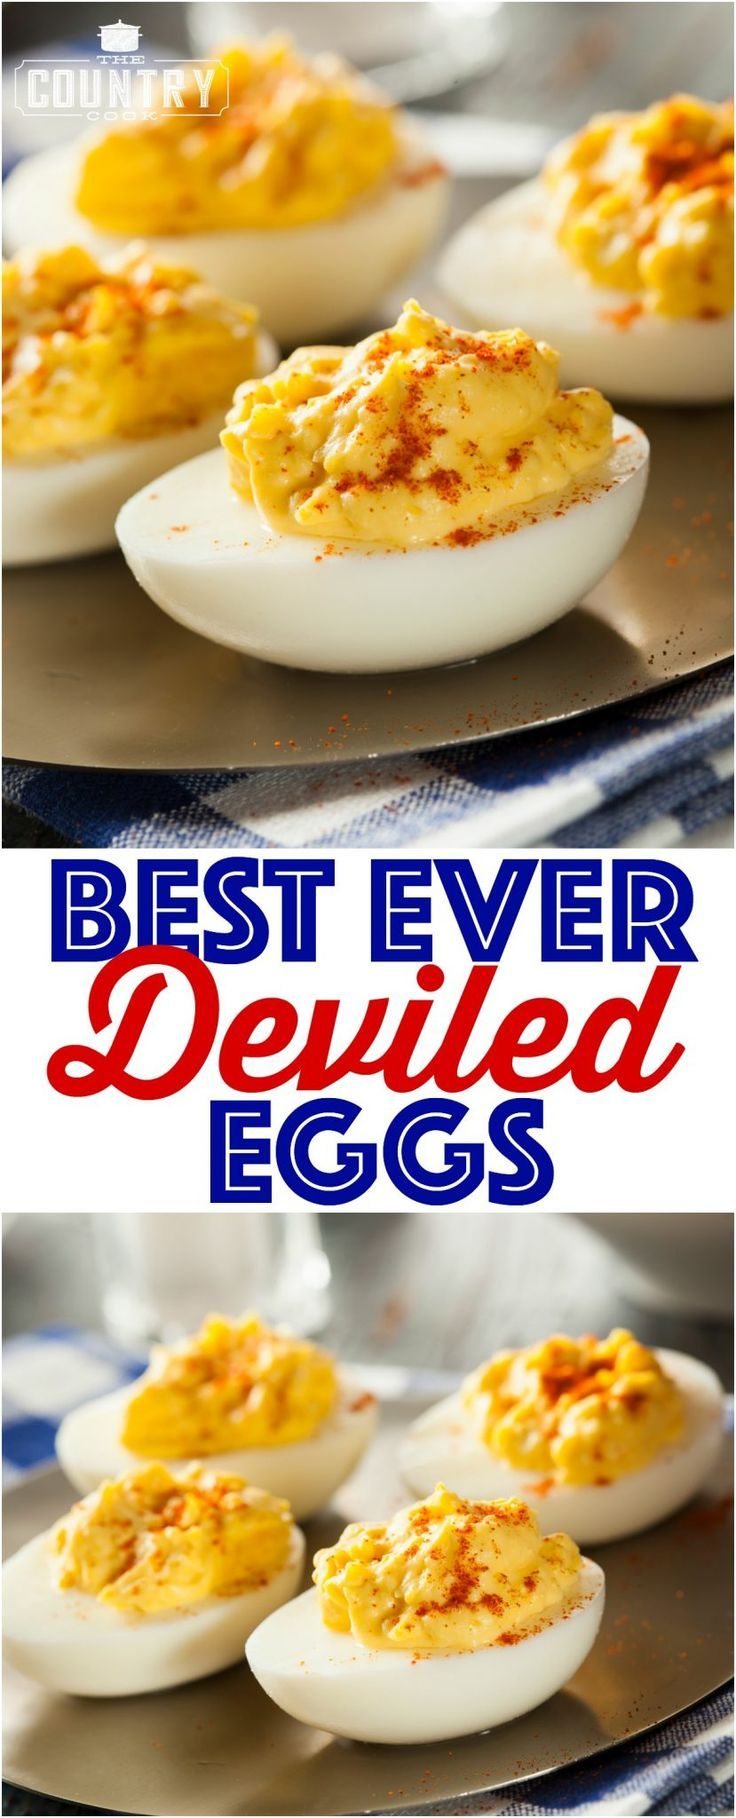 The Best Ever Deviled Eggs recipe from The Country Cook